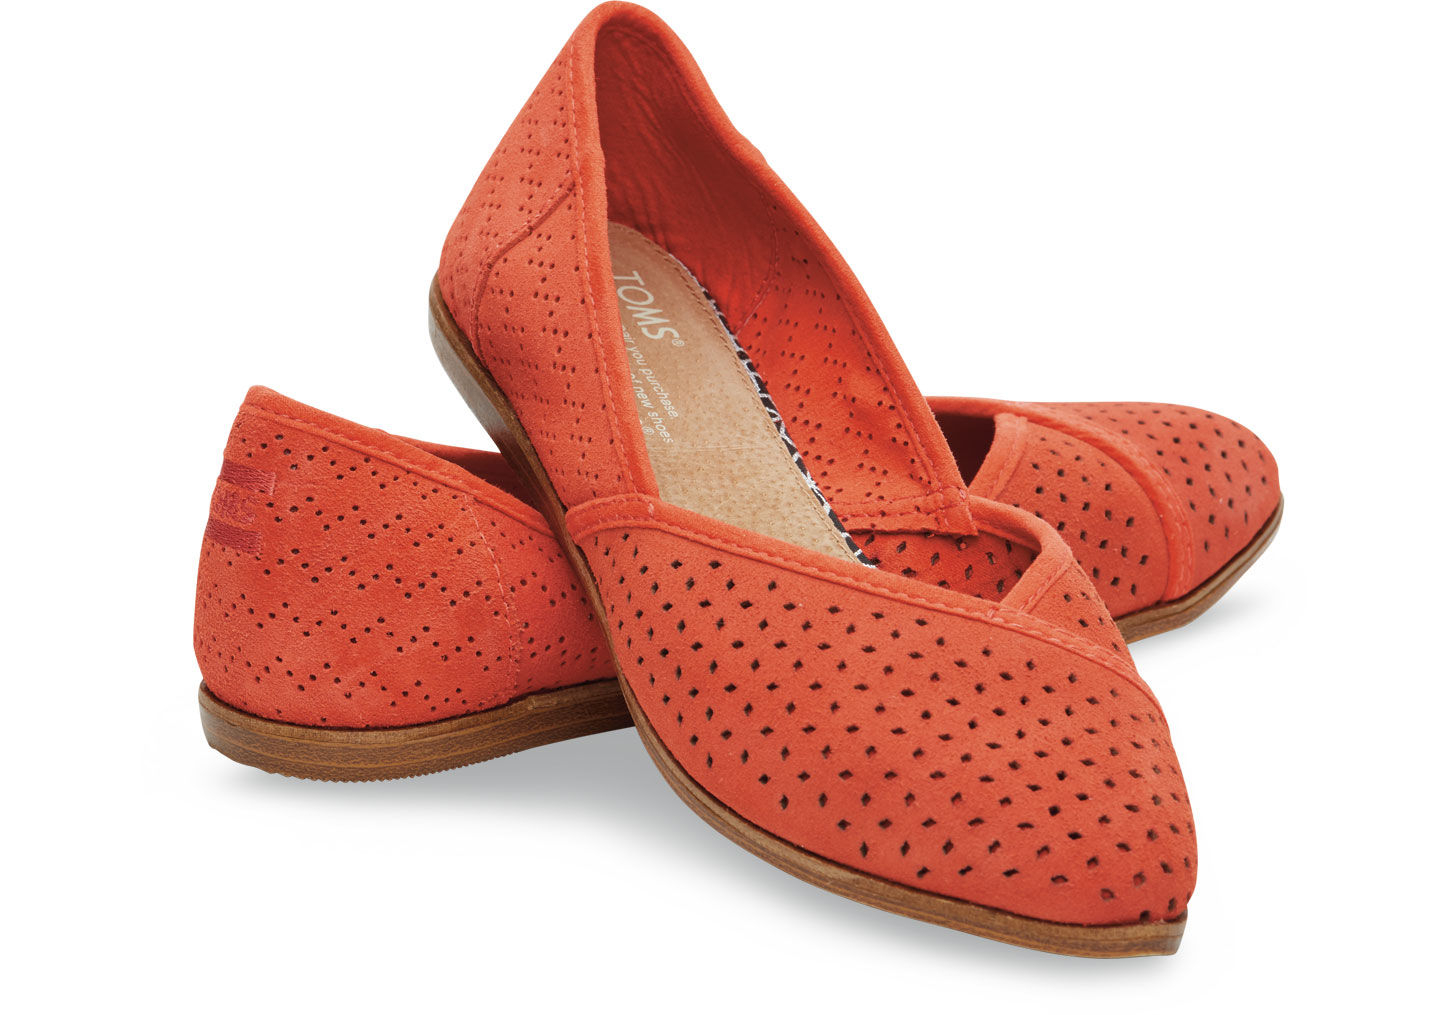 b4d2aad7e TOMS Fiesta Suede Perforated Women'S Jutti Flats in Red - Lyst